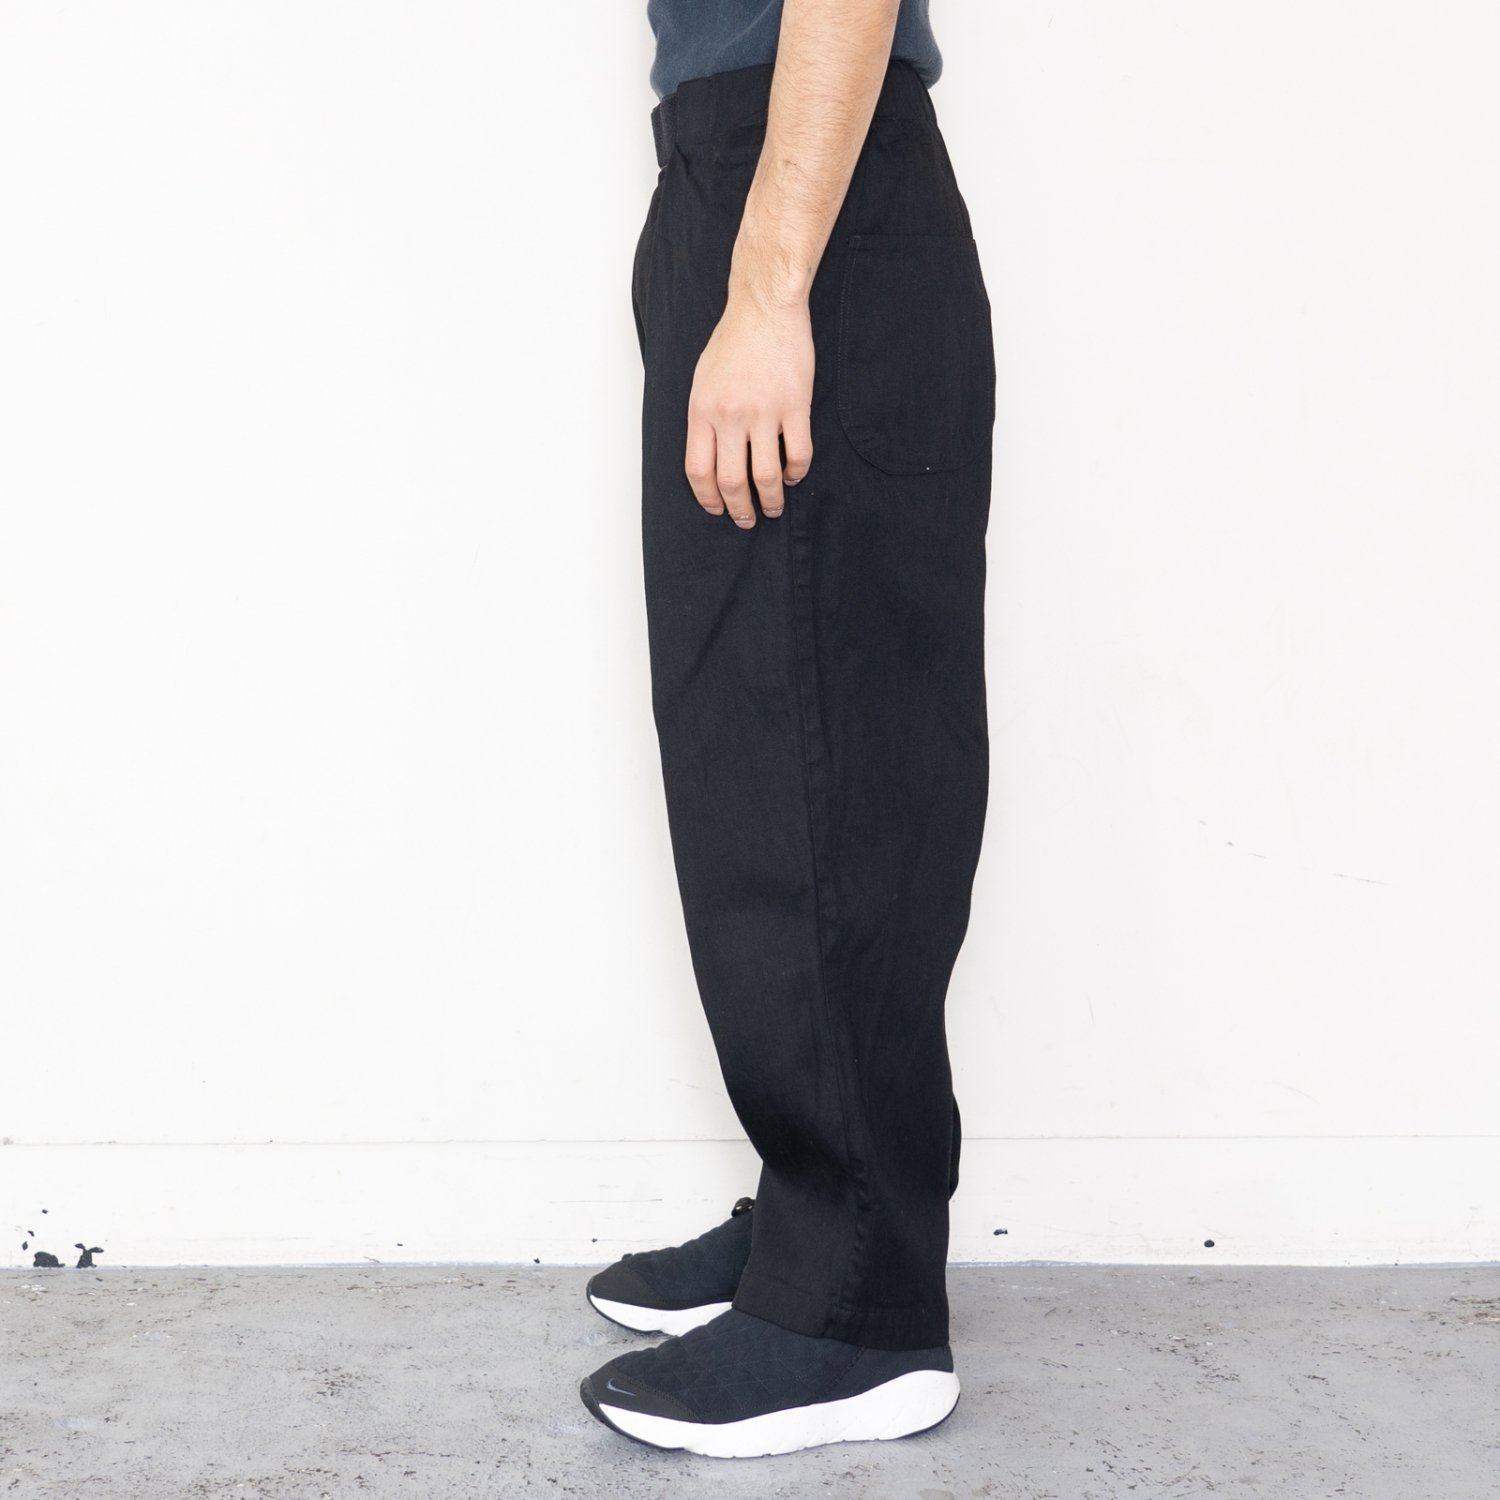 RELAXFIT * NORTH PADRE ISLAND DENIM * Black